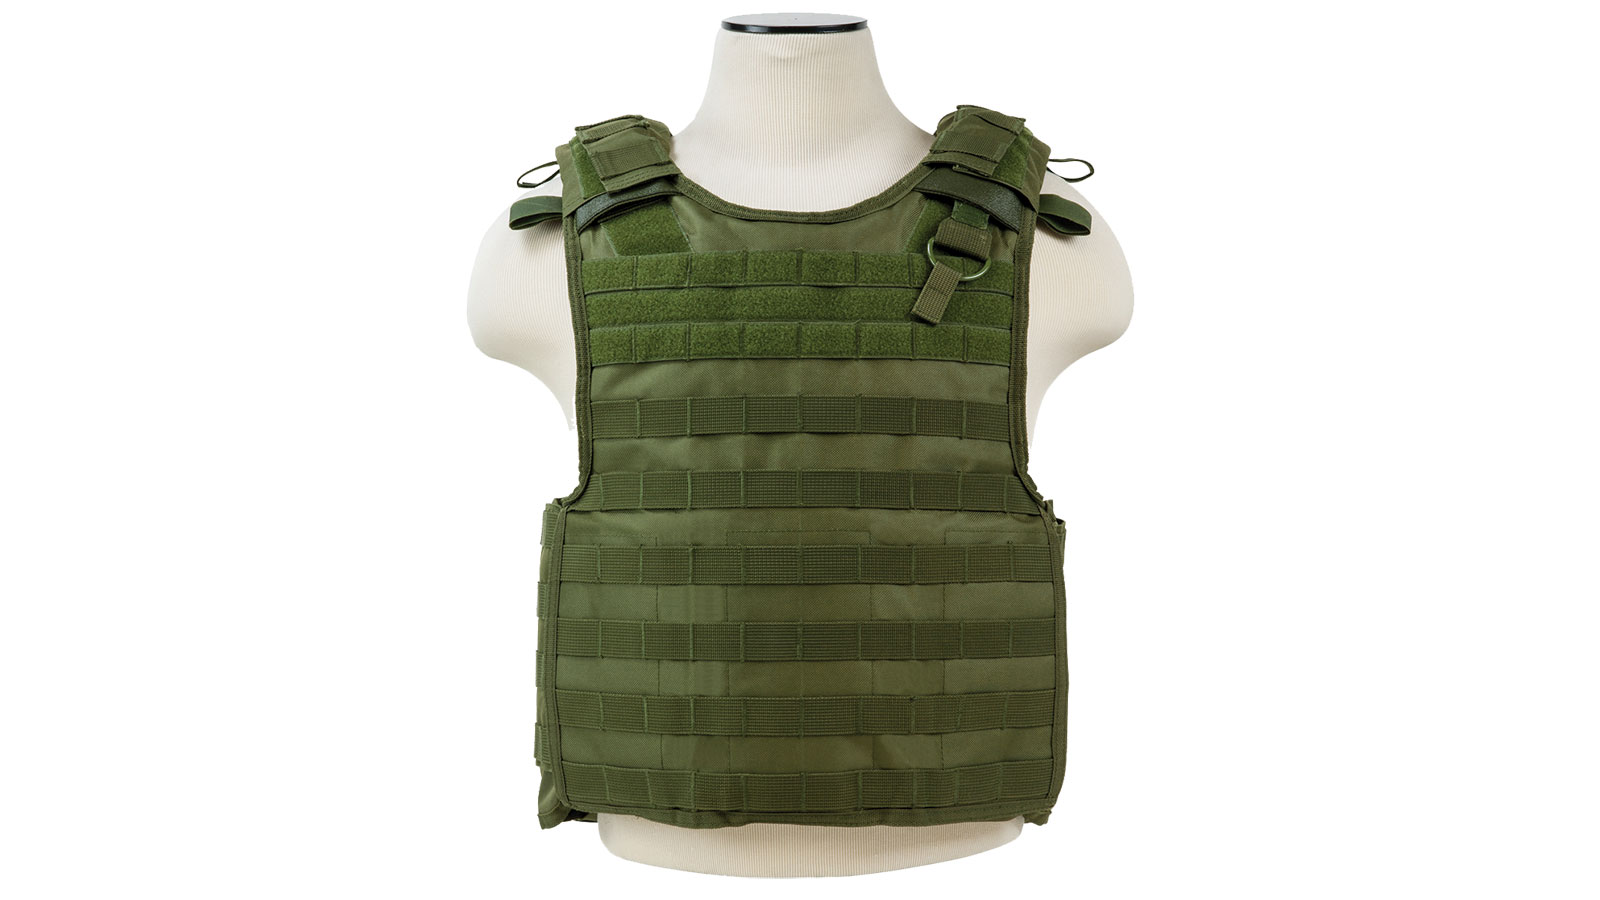 NC Star Quick Release Plate Carrier Vest Green